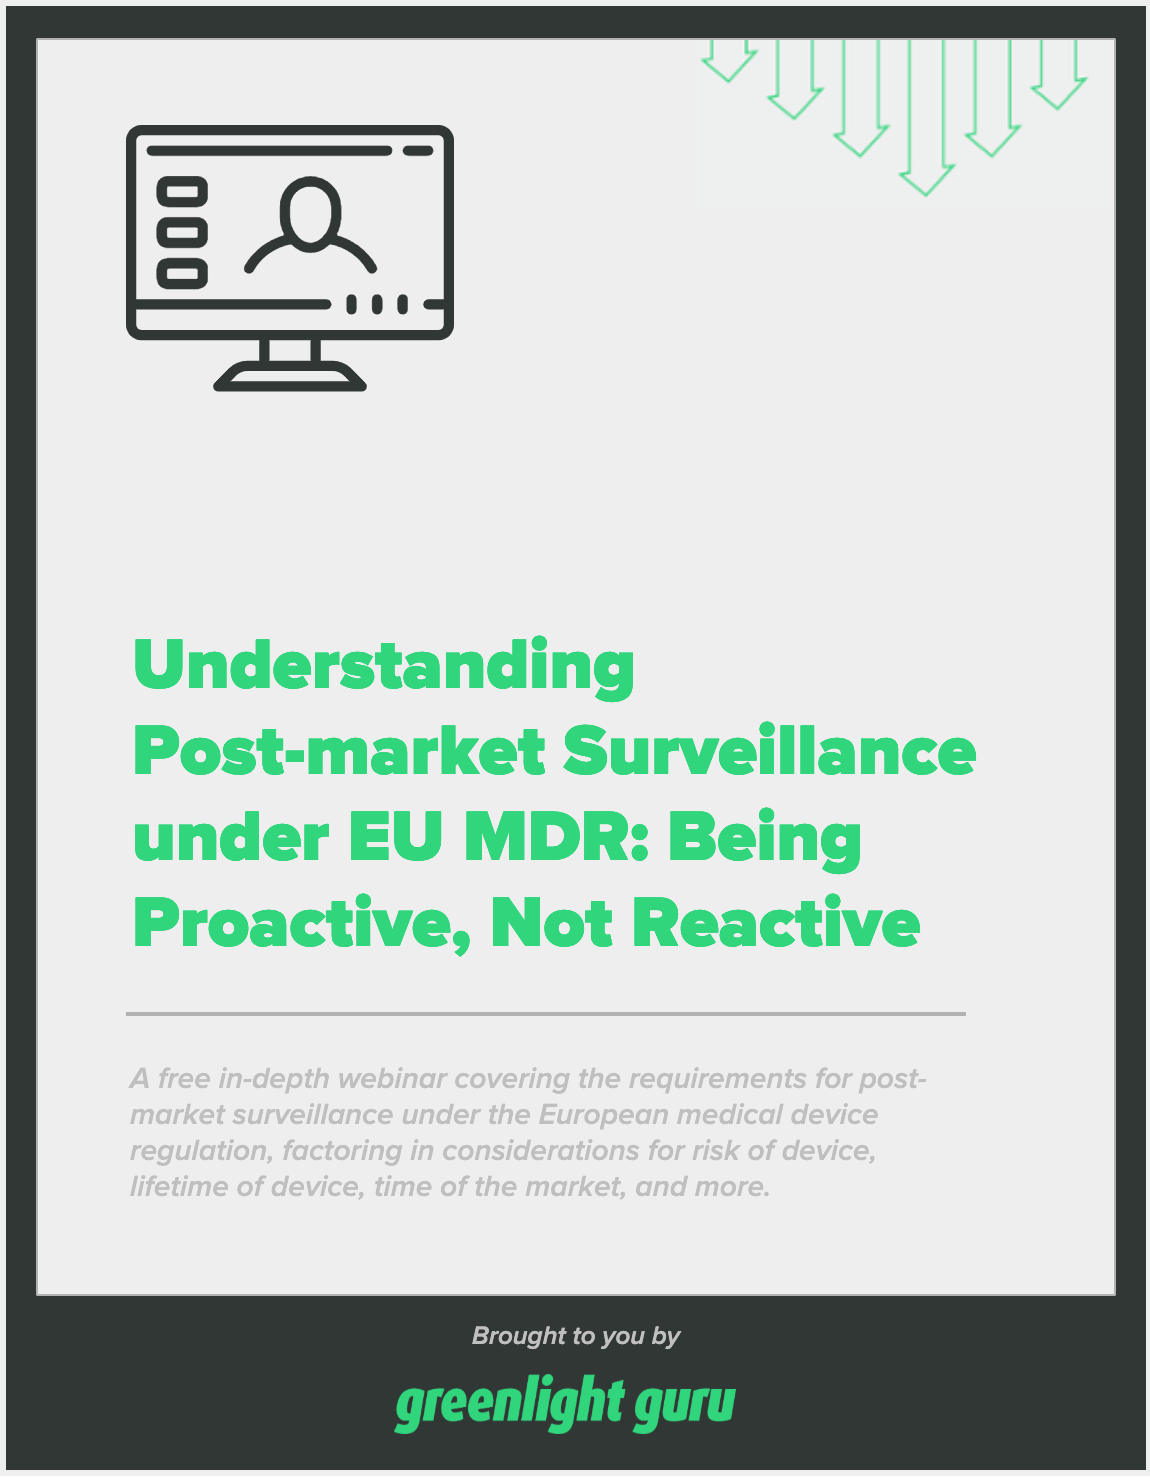 Post-market surveillance for medical devices under EU MDR free webinar recording and slides